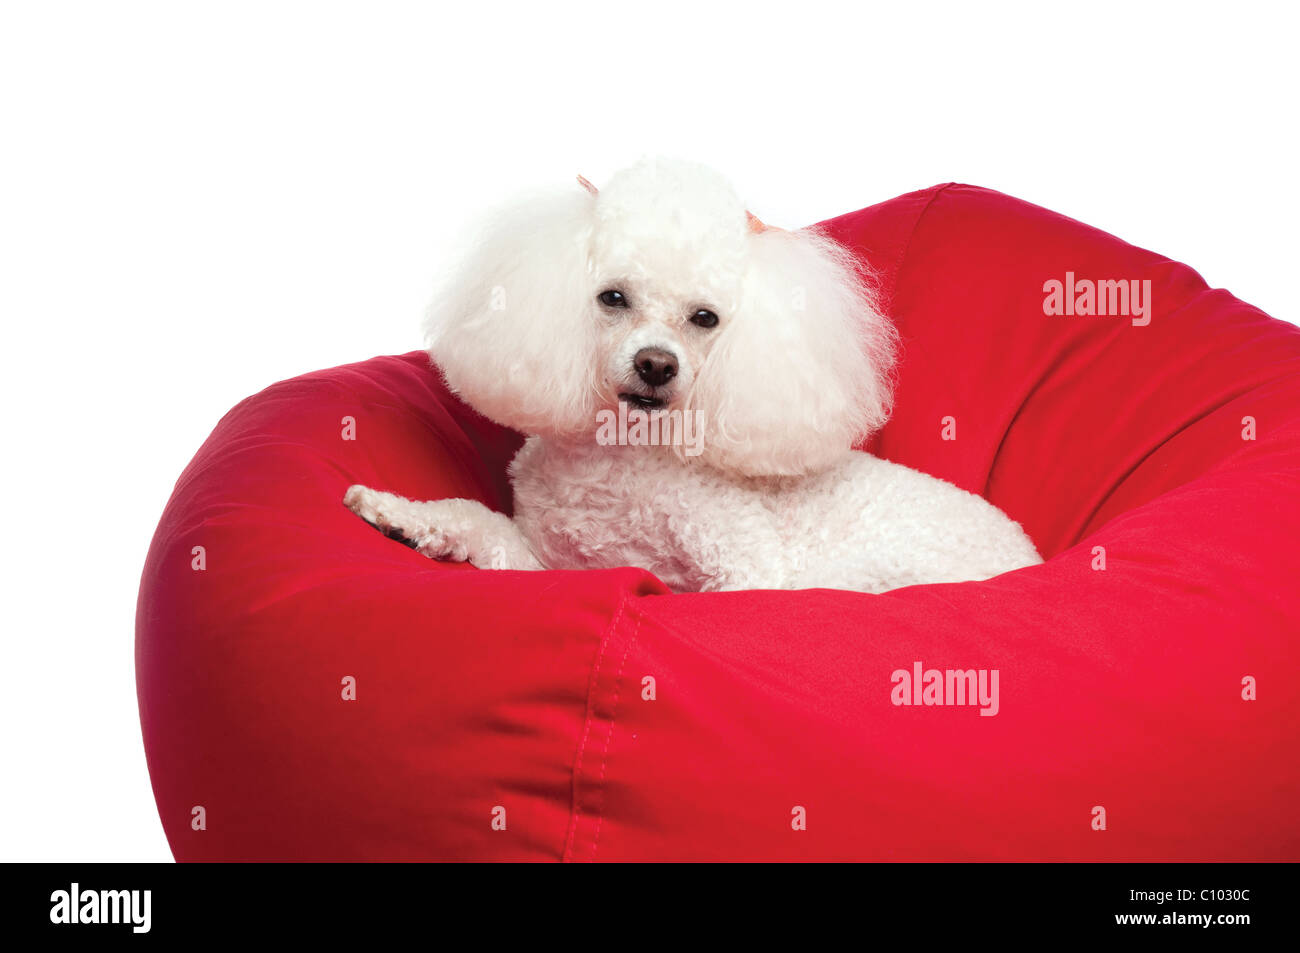 An adorable white toy poodle snuggled up in a red bean bag chair. Shot in the studio on an isolated white seamless - Stock Image